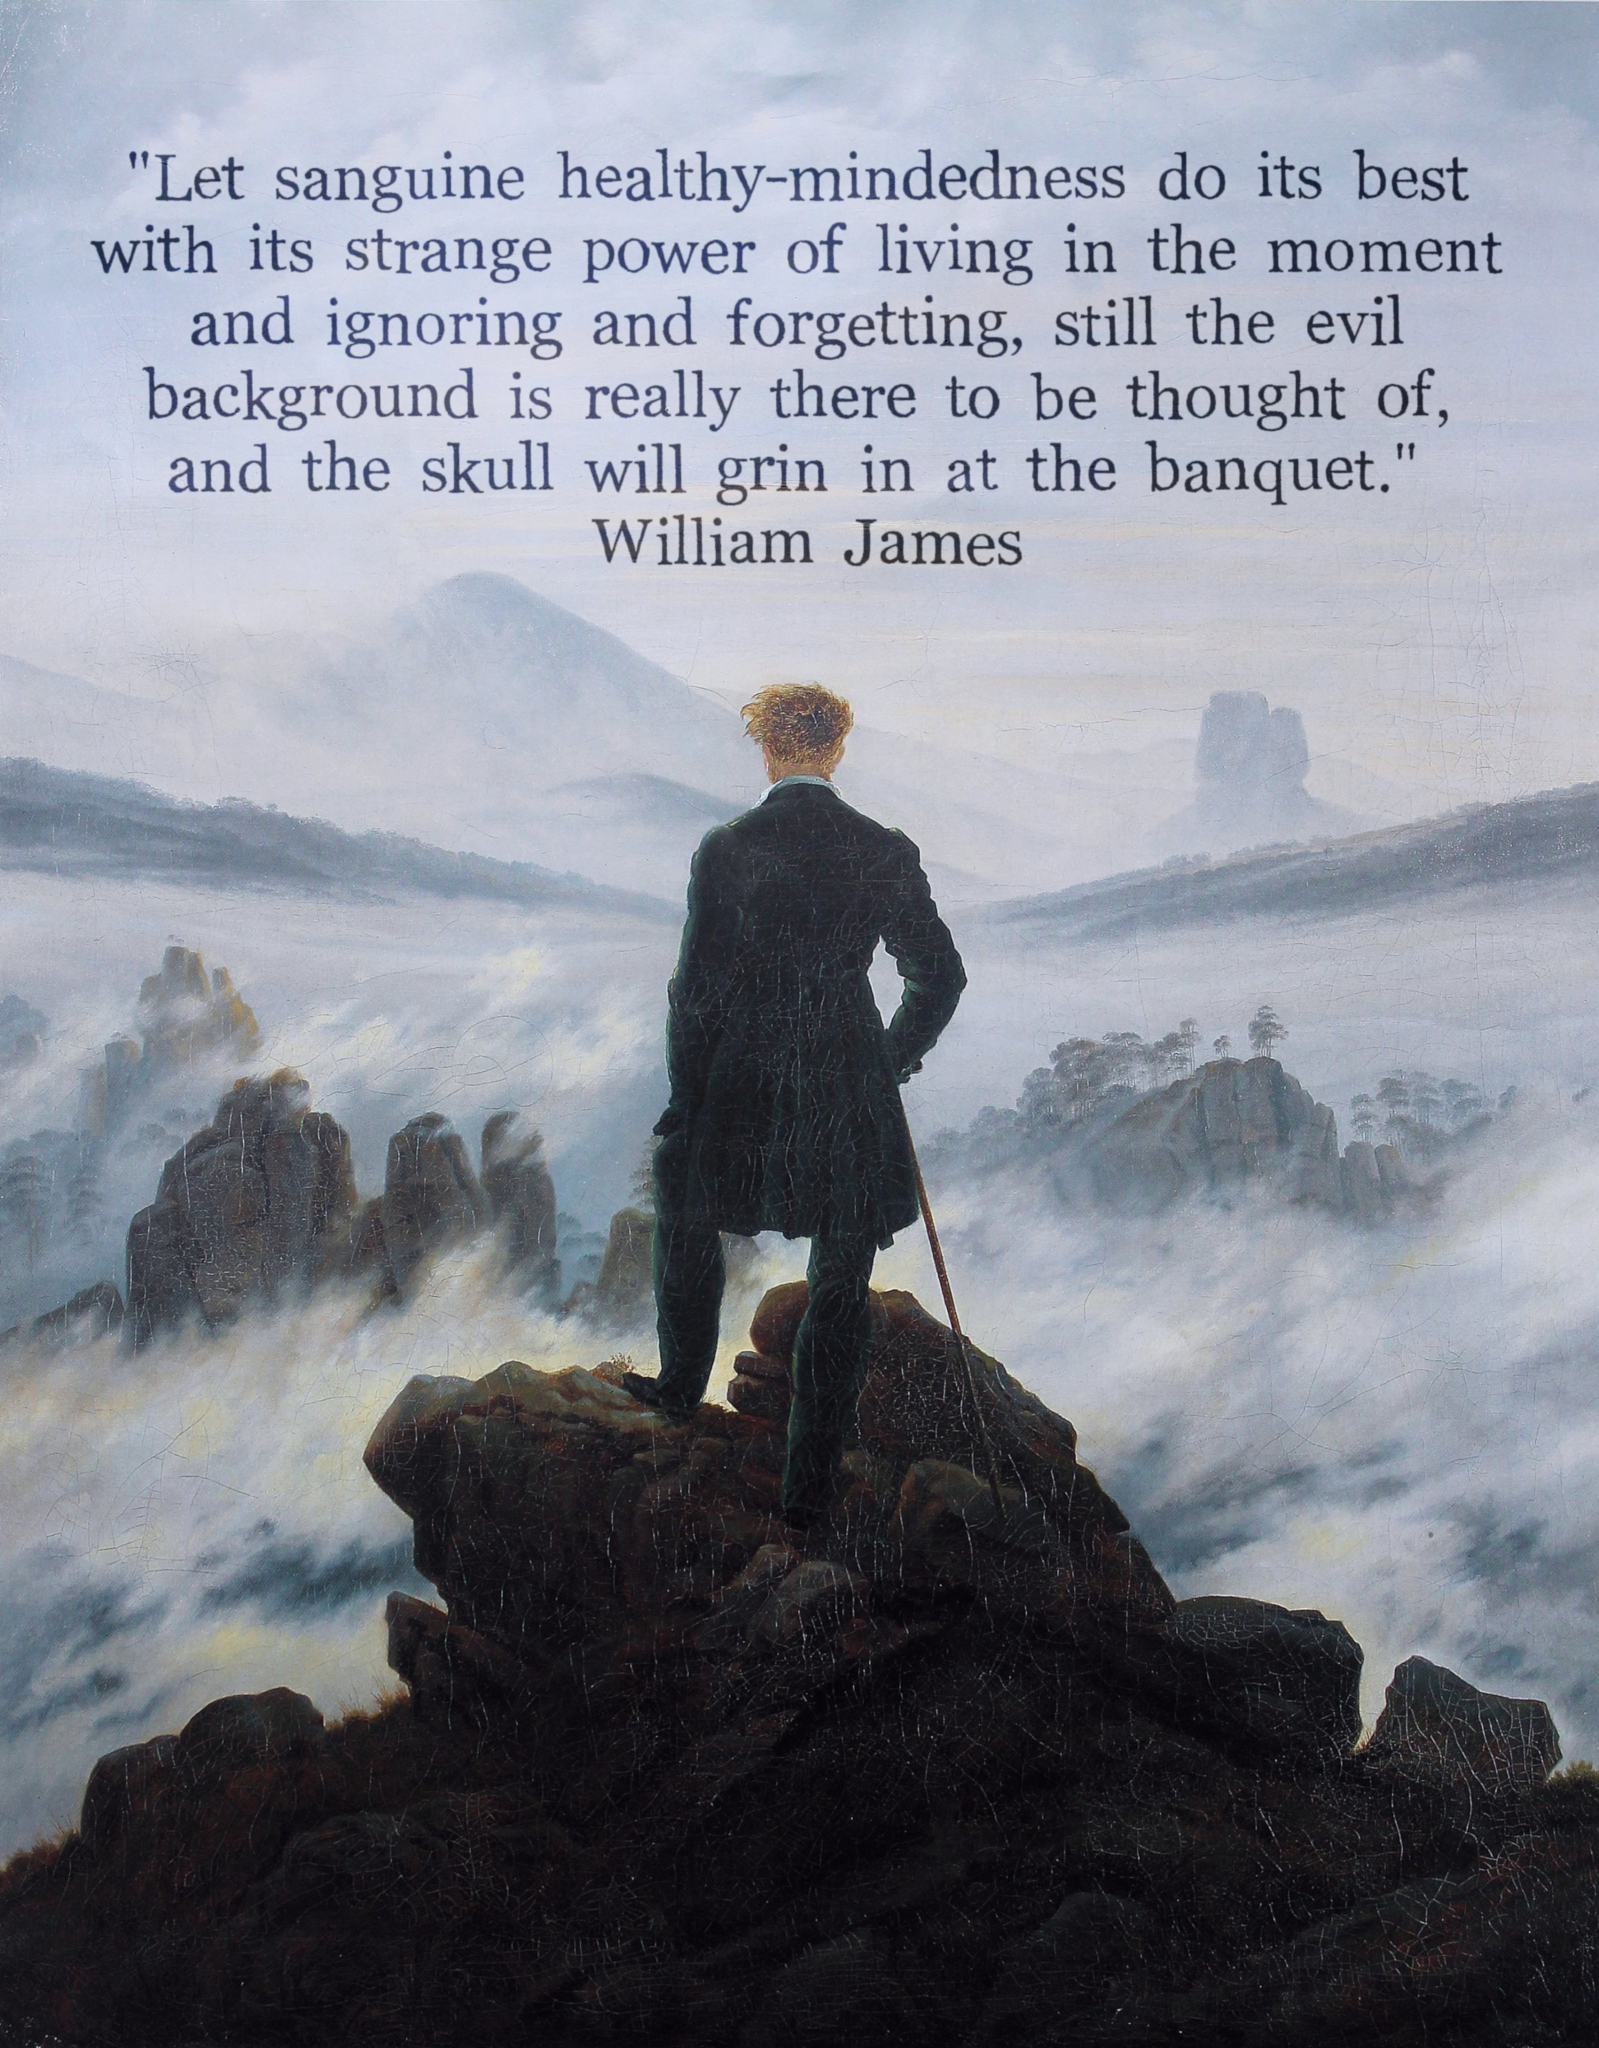 """Let sanguine healthy-mindedness do its best with its strange power of living in the moment and ignoring and forgetting, still the evil background is really there to be thought of, and the skull will grin in at the banquet."" William James [1599×2048]"